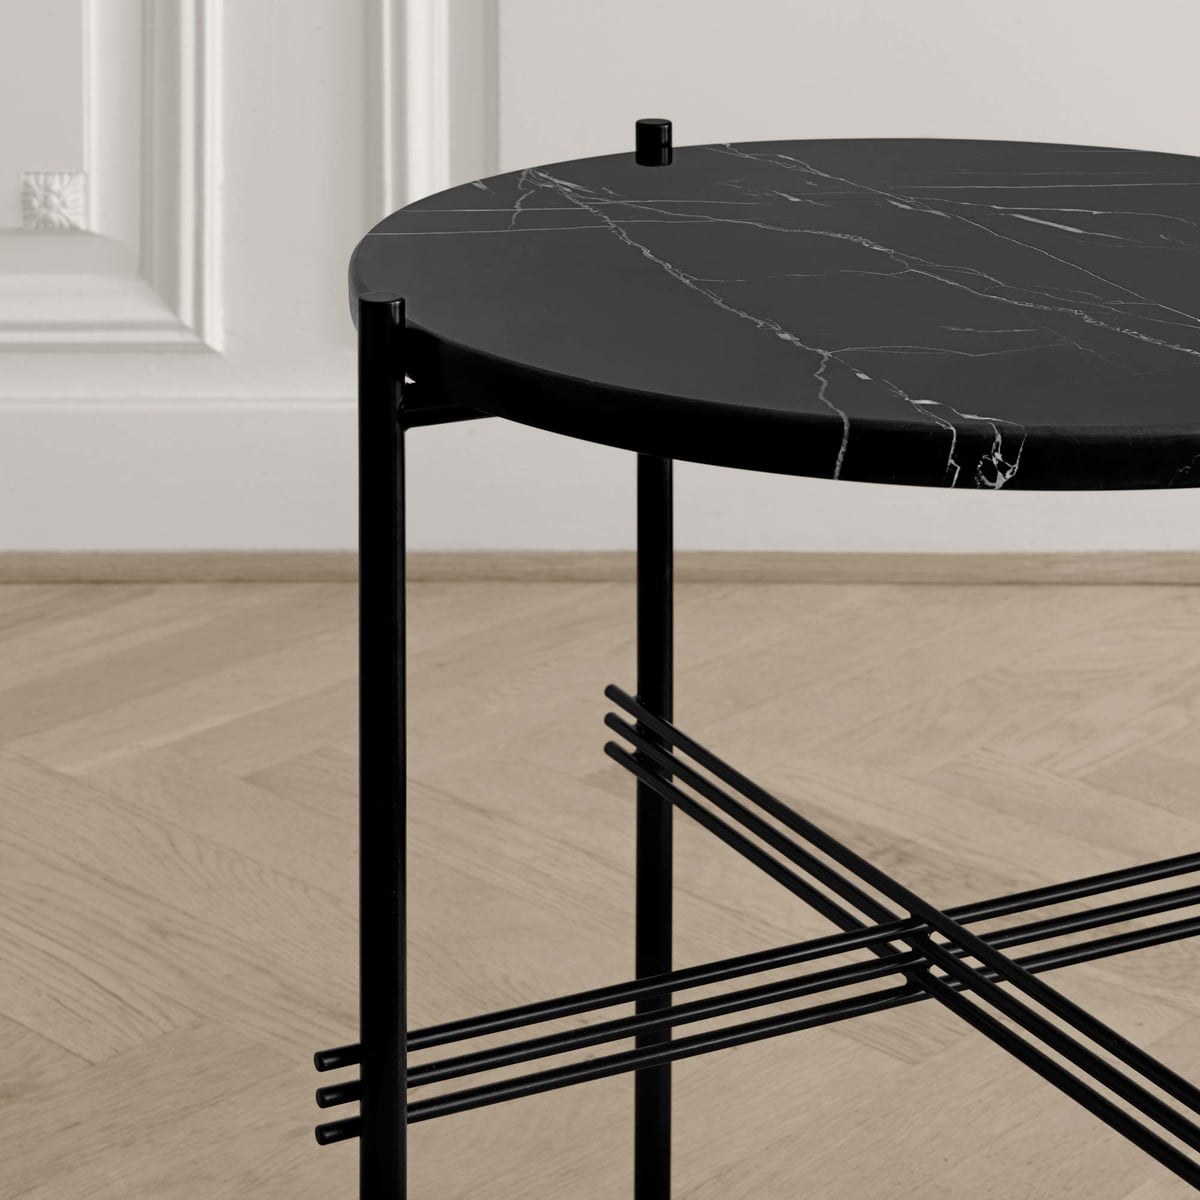 Shop Craps Coffee Table: TS Coffee Table By Gubi